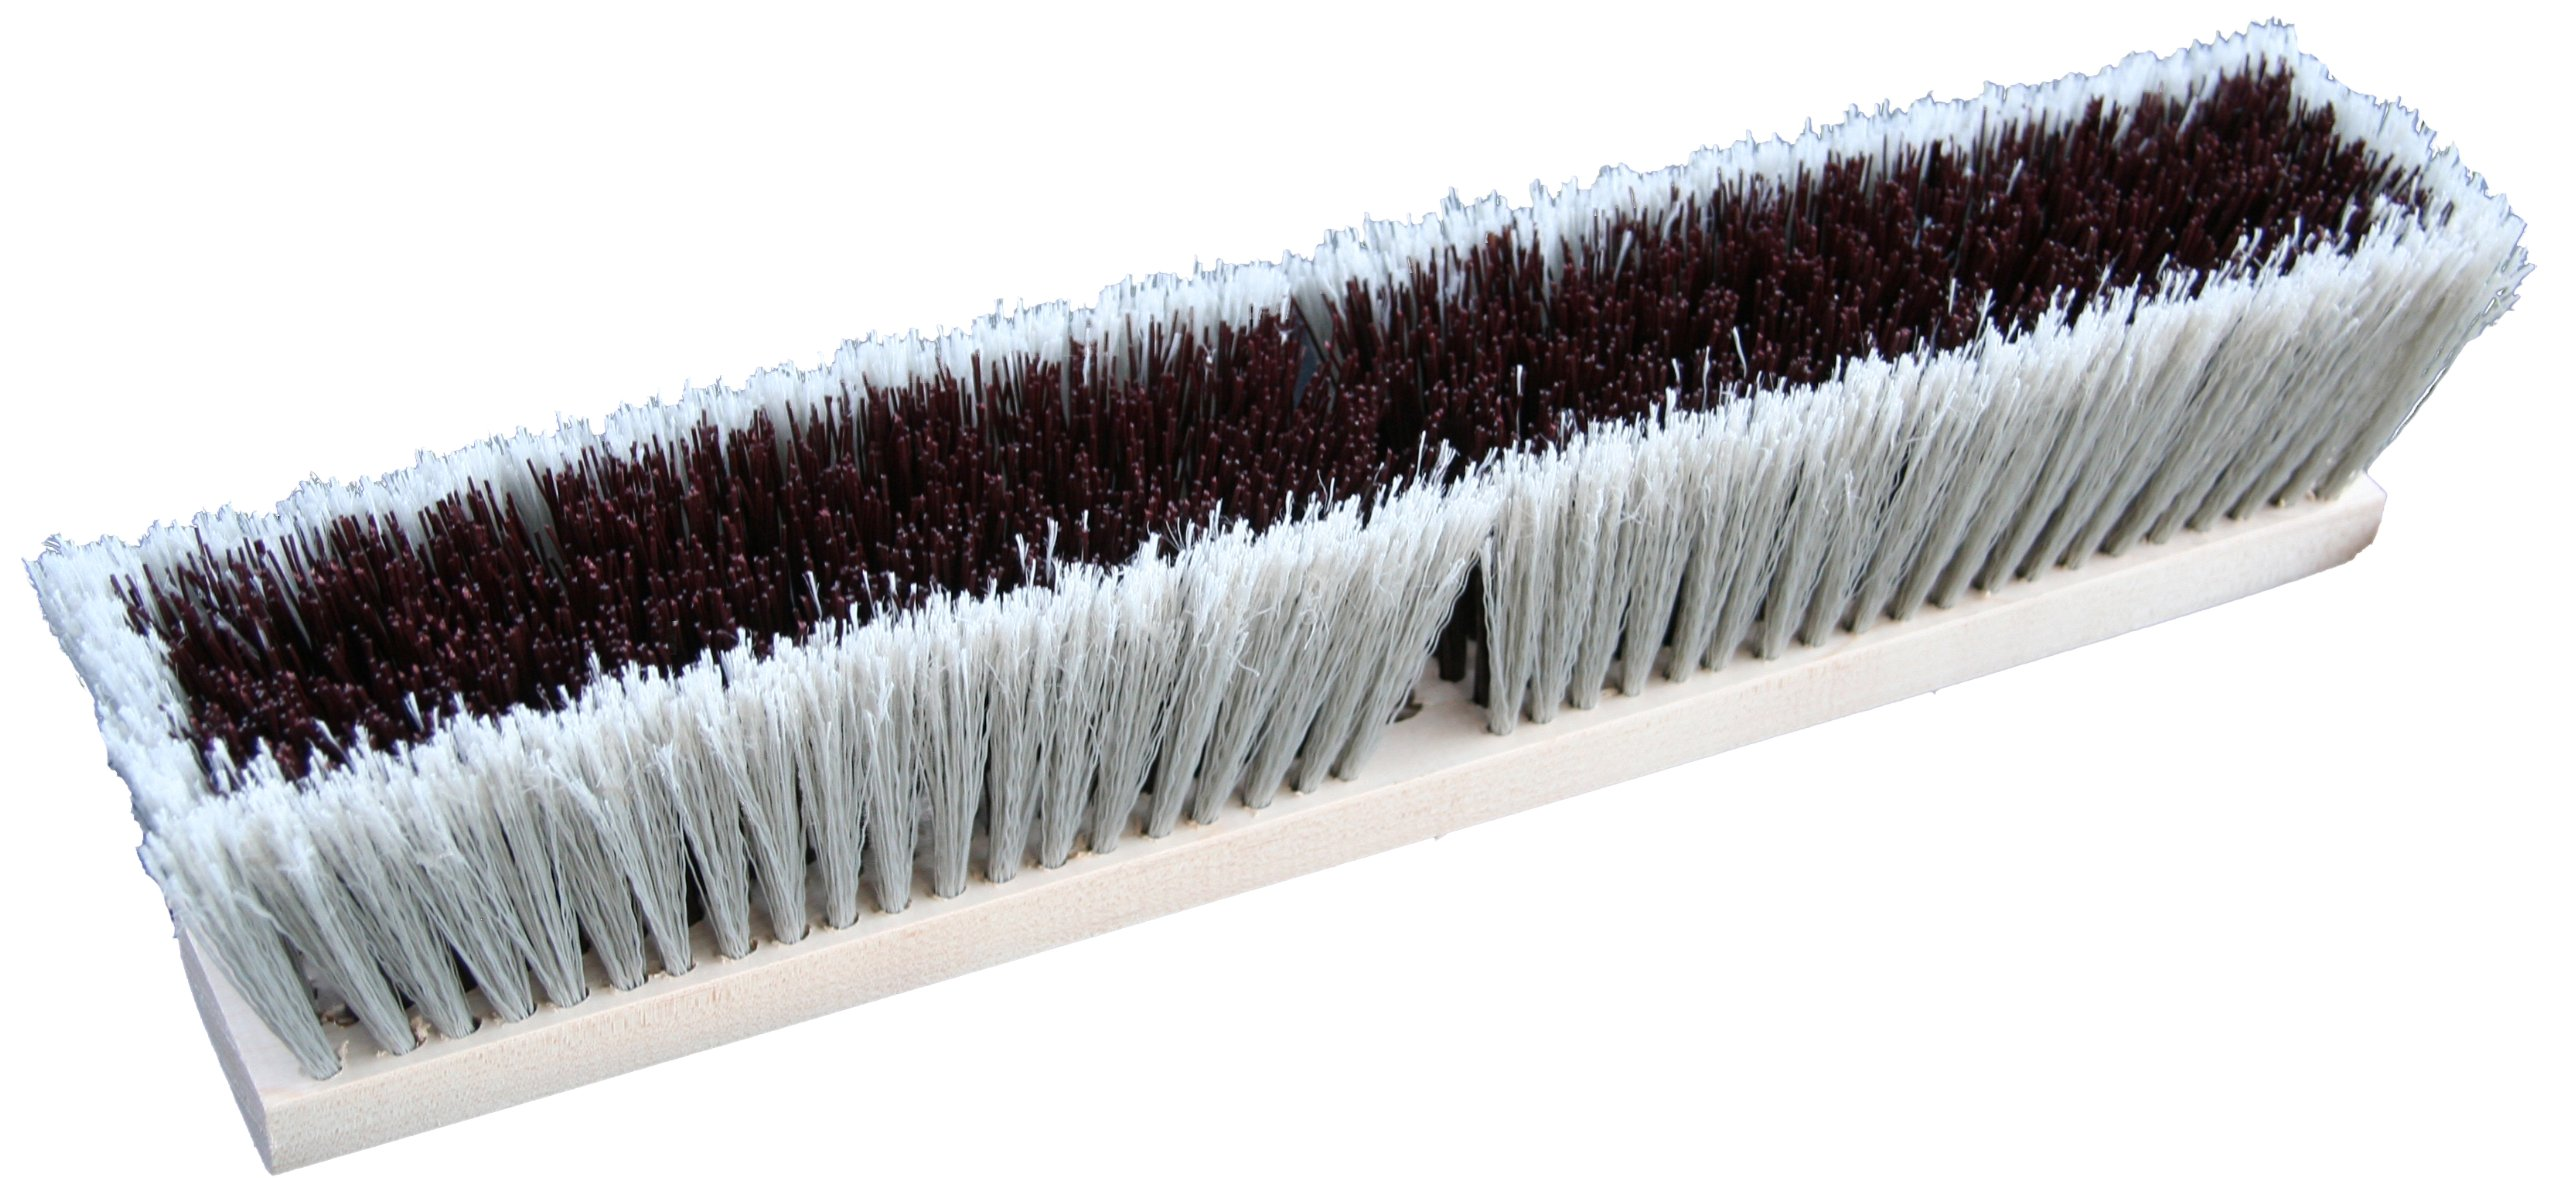 Zephyr 39524 Combo/Strand Push Broom, 24'' Head Width, Red and Grey (Case of 12)